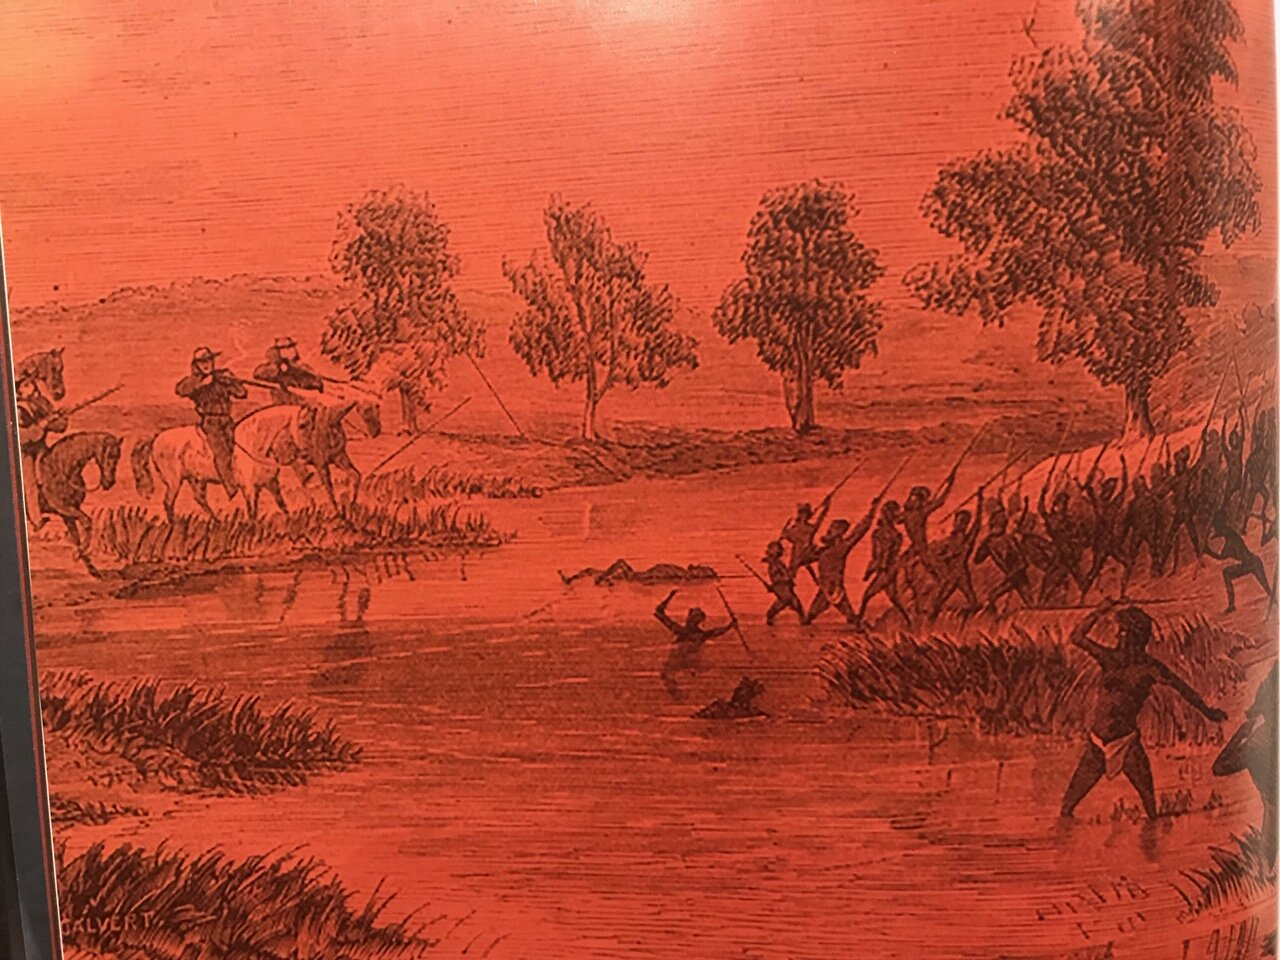 - Discussions of violent colonial massacres are not suitable topics for 9 year old children.- Image from Young Dark Emu - 'Conflict on the Rufus'- page 12